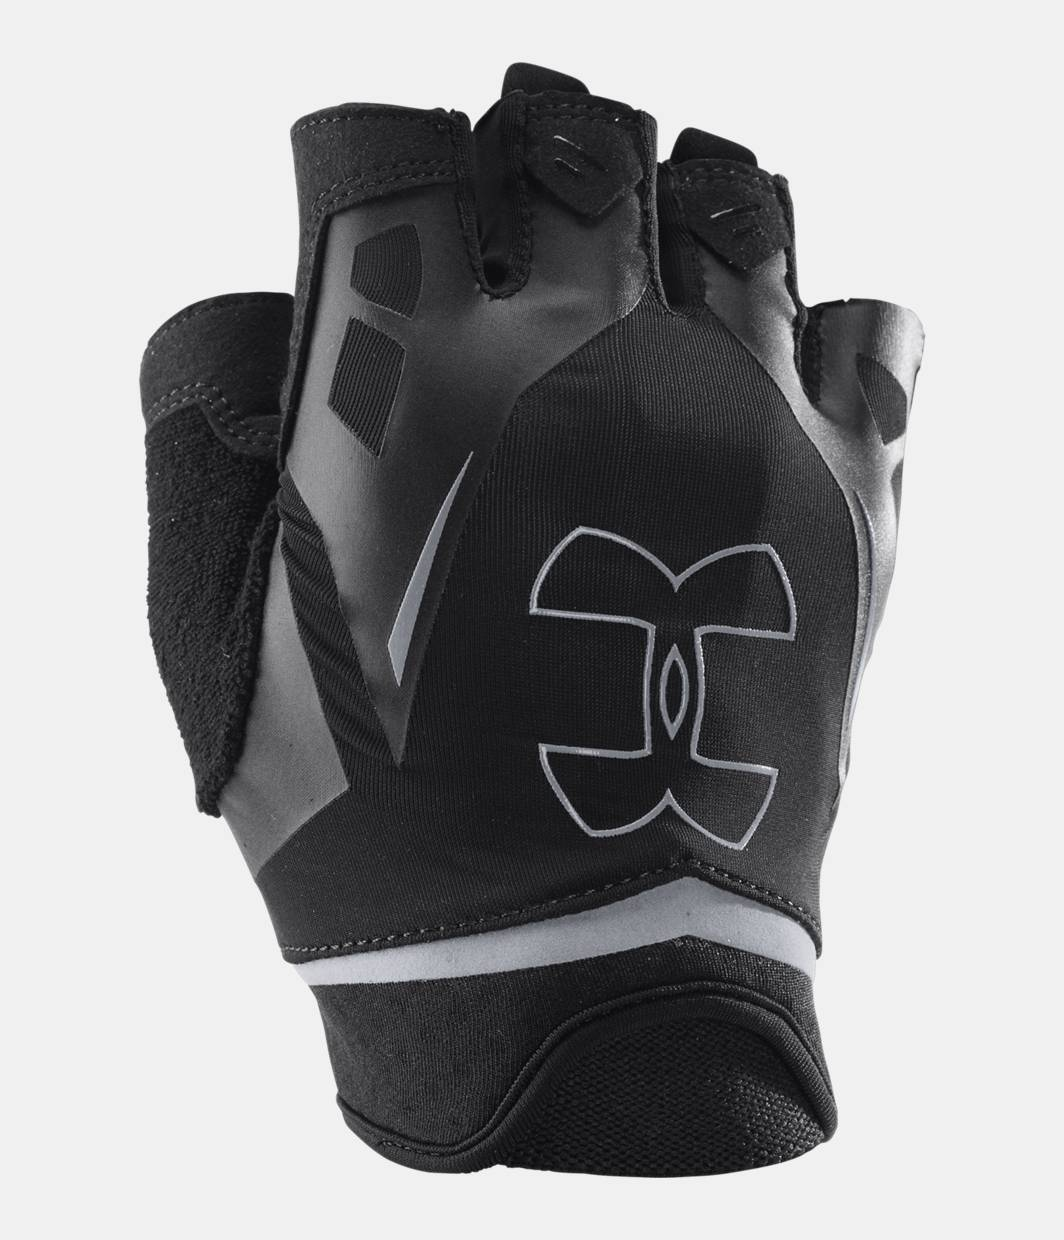 Mens sizes in gloves - Men S Ua Flux Half Finger Training Gloves Black Zoomed Image